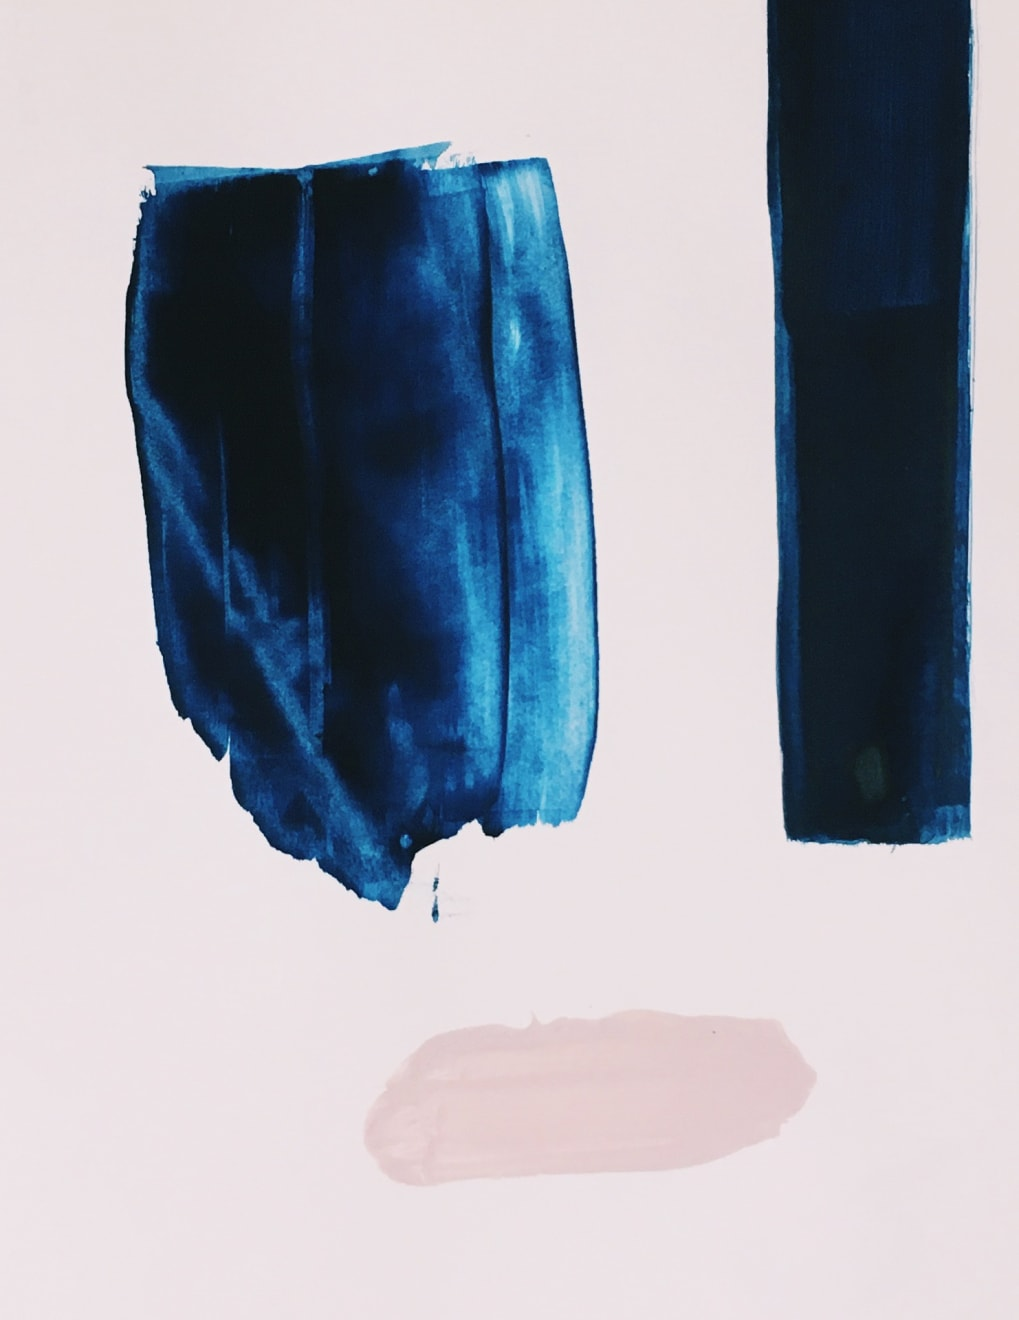 Untitled study in blue